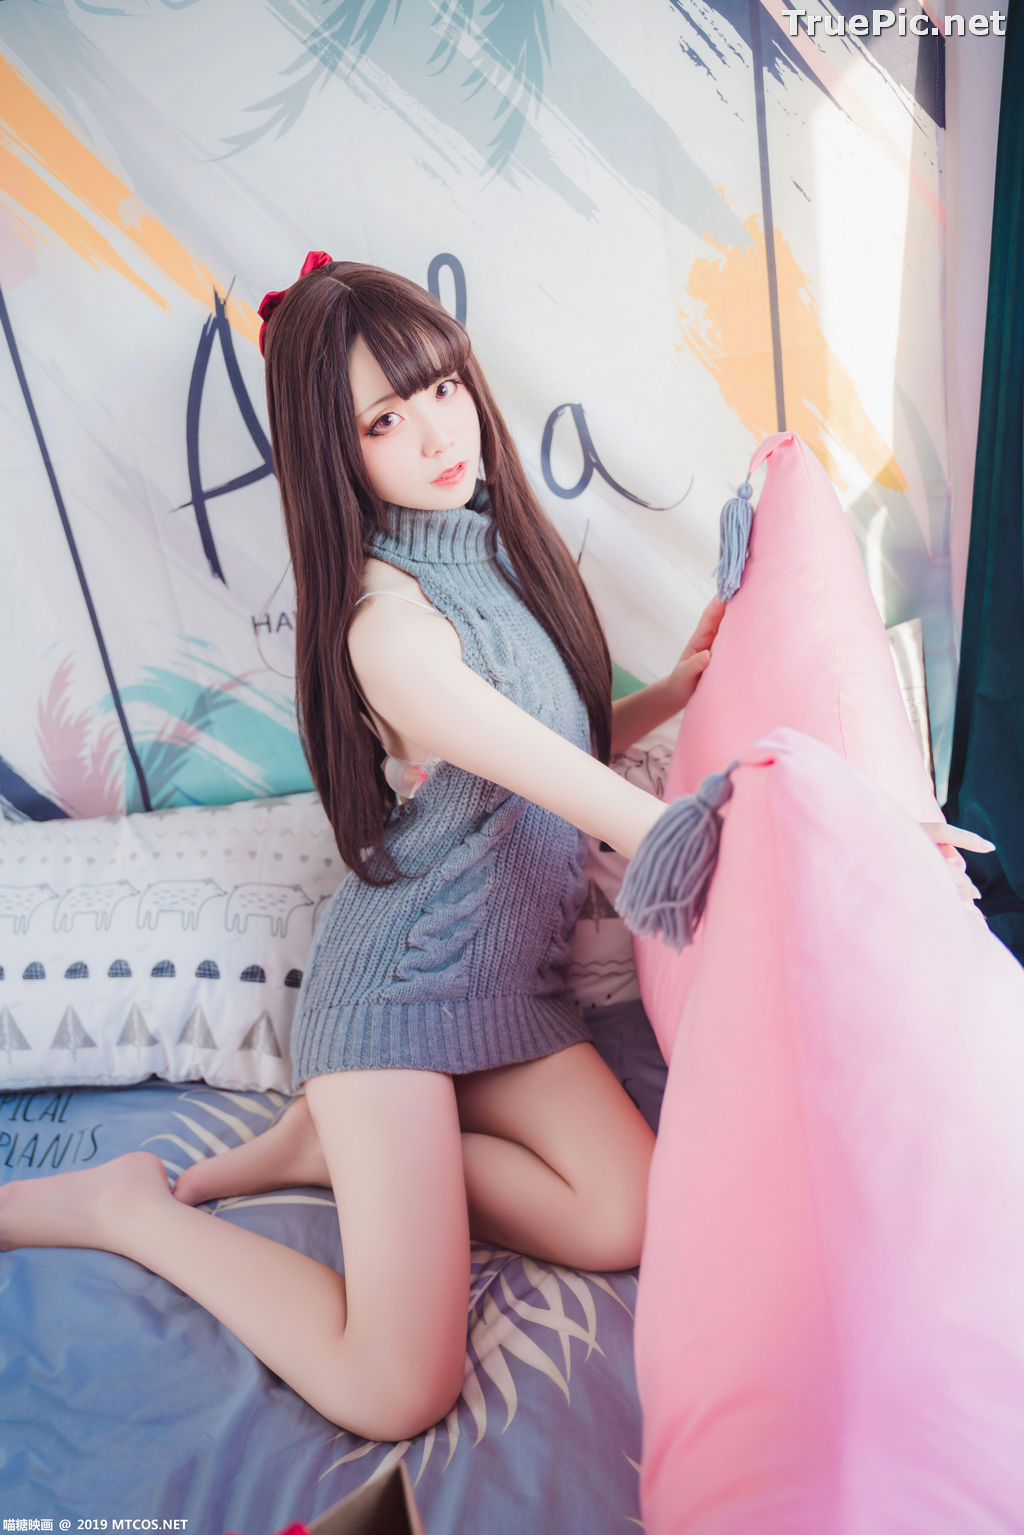 Image [MTCos] 喵糖映画 Vol.030 – Chinese Cute Model – Open Back Sweater - TruePic.net - Picture-8